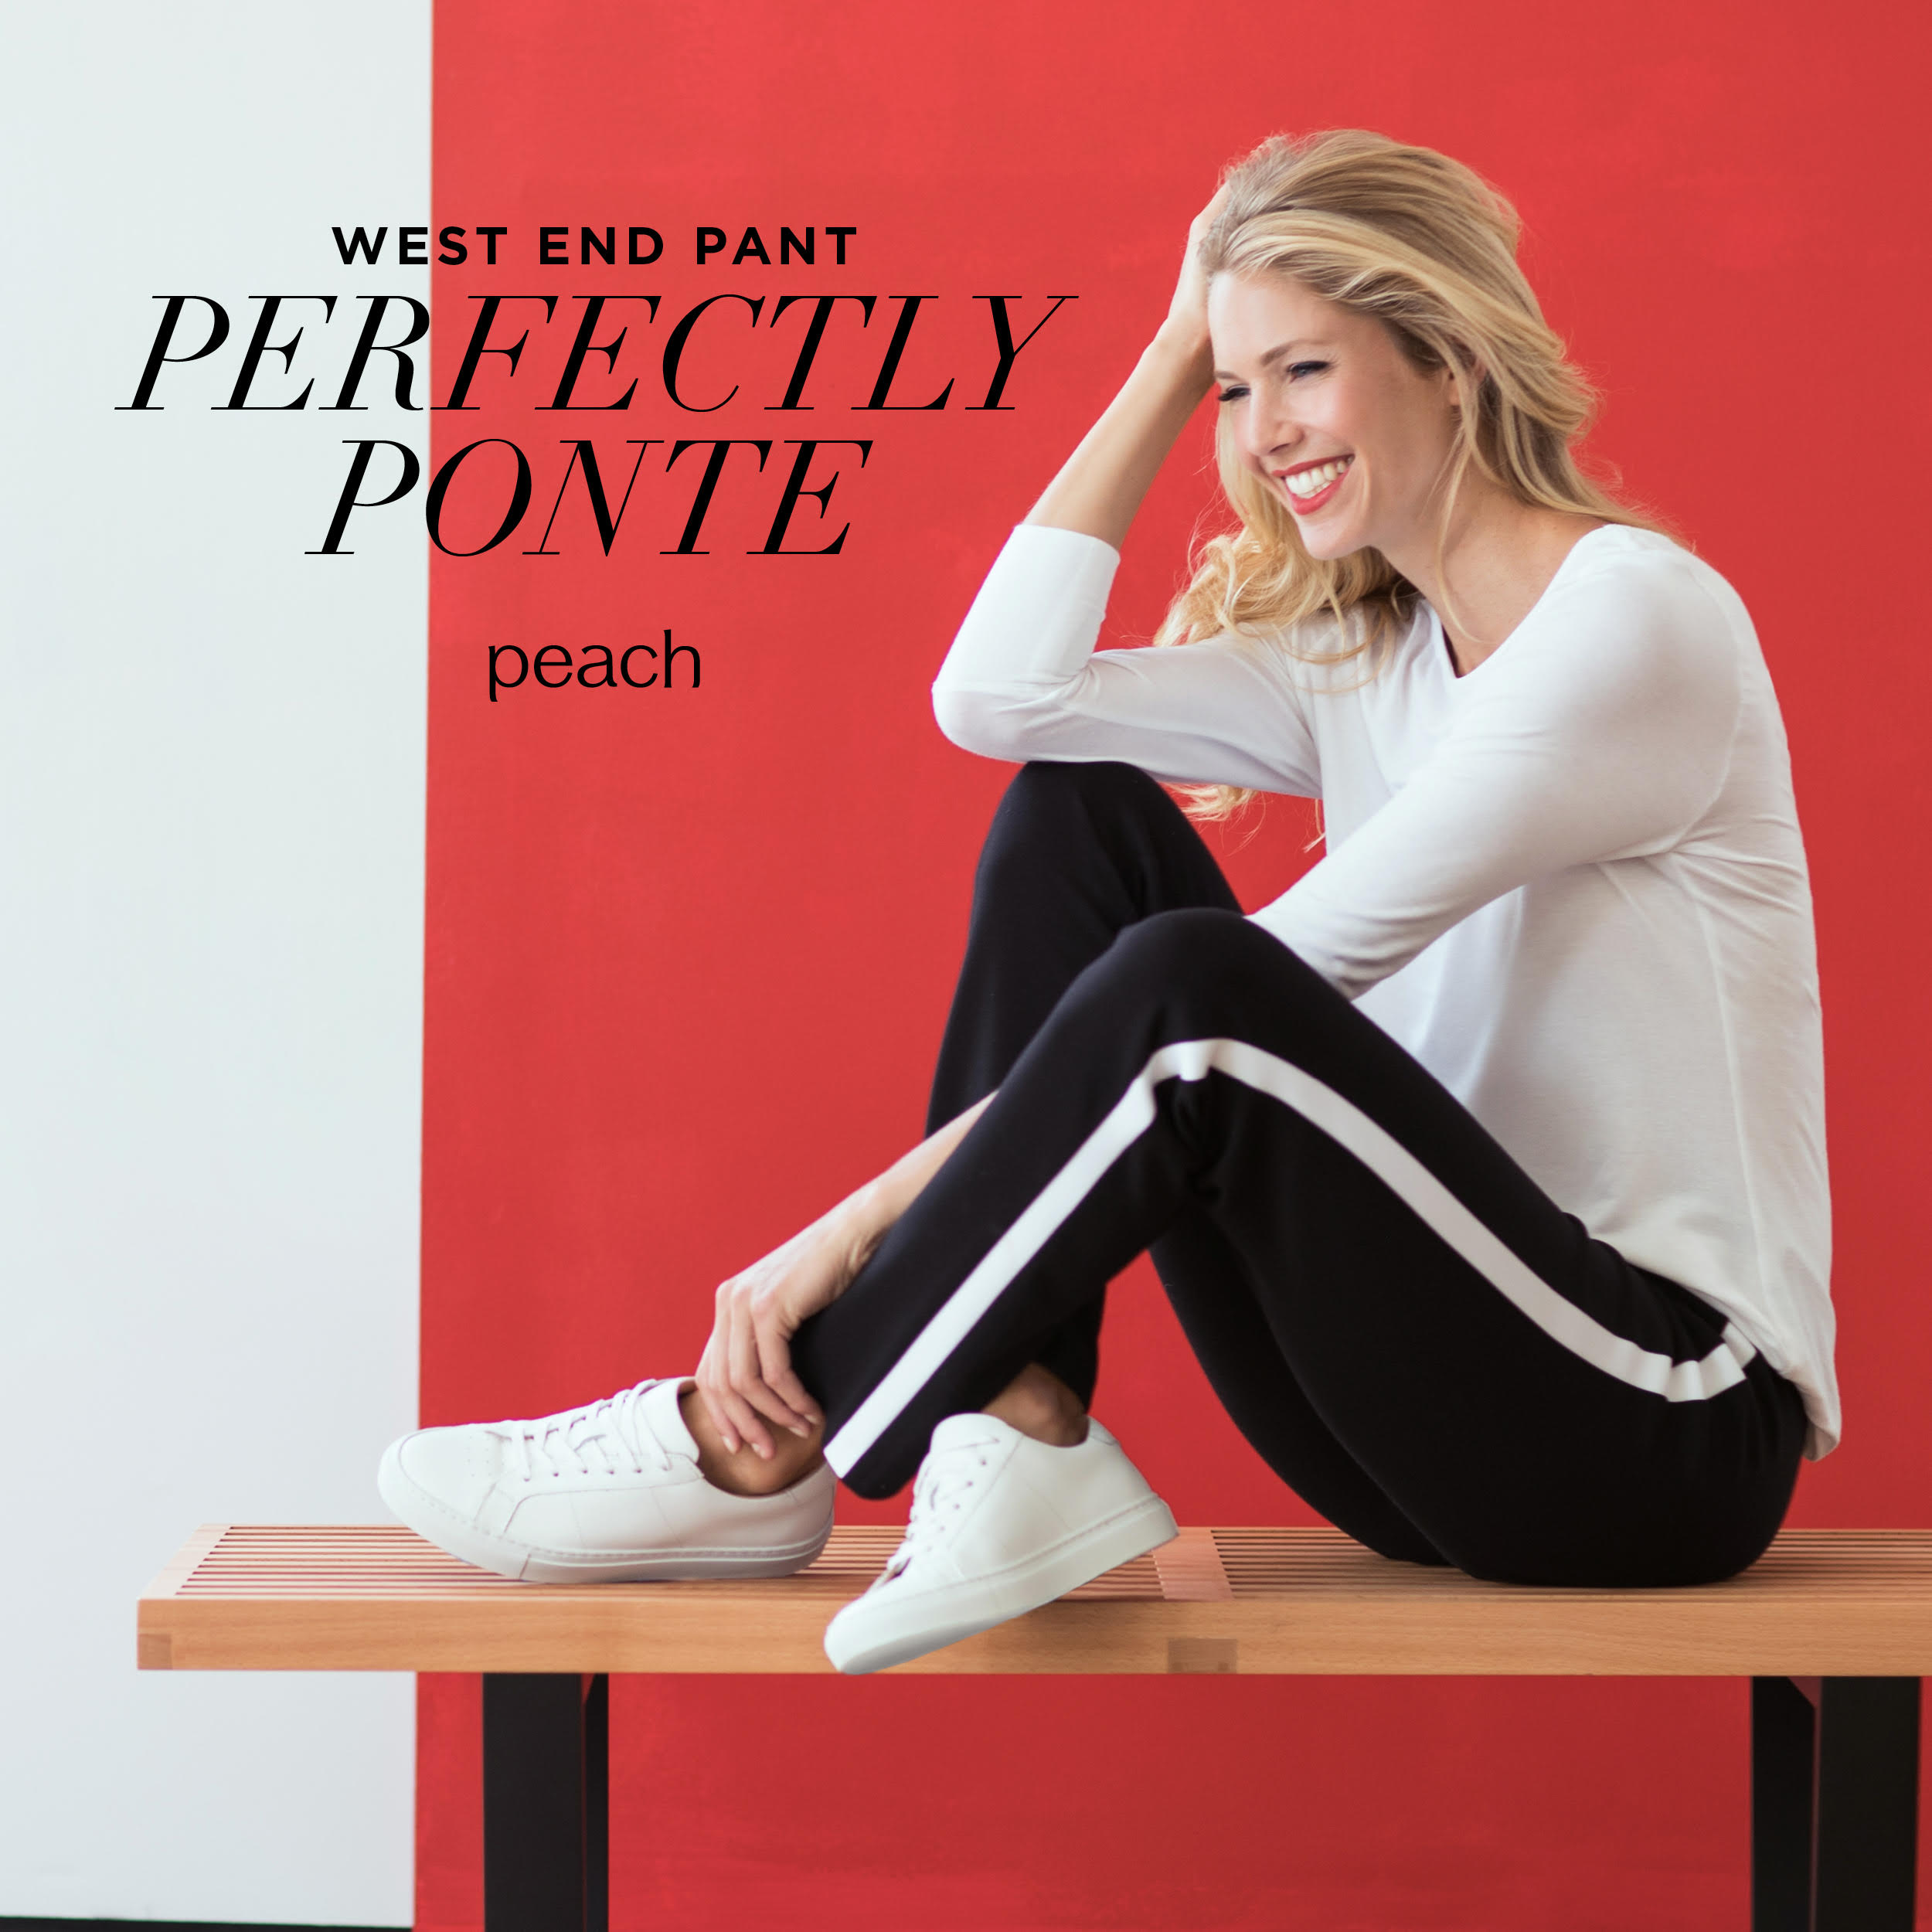 Peach - Athleisure for today's woman